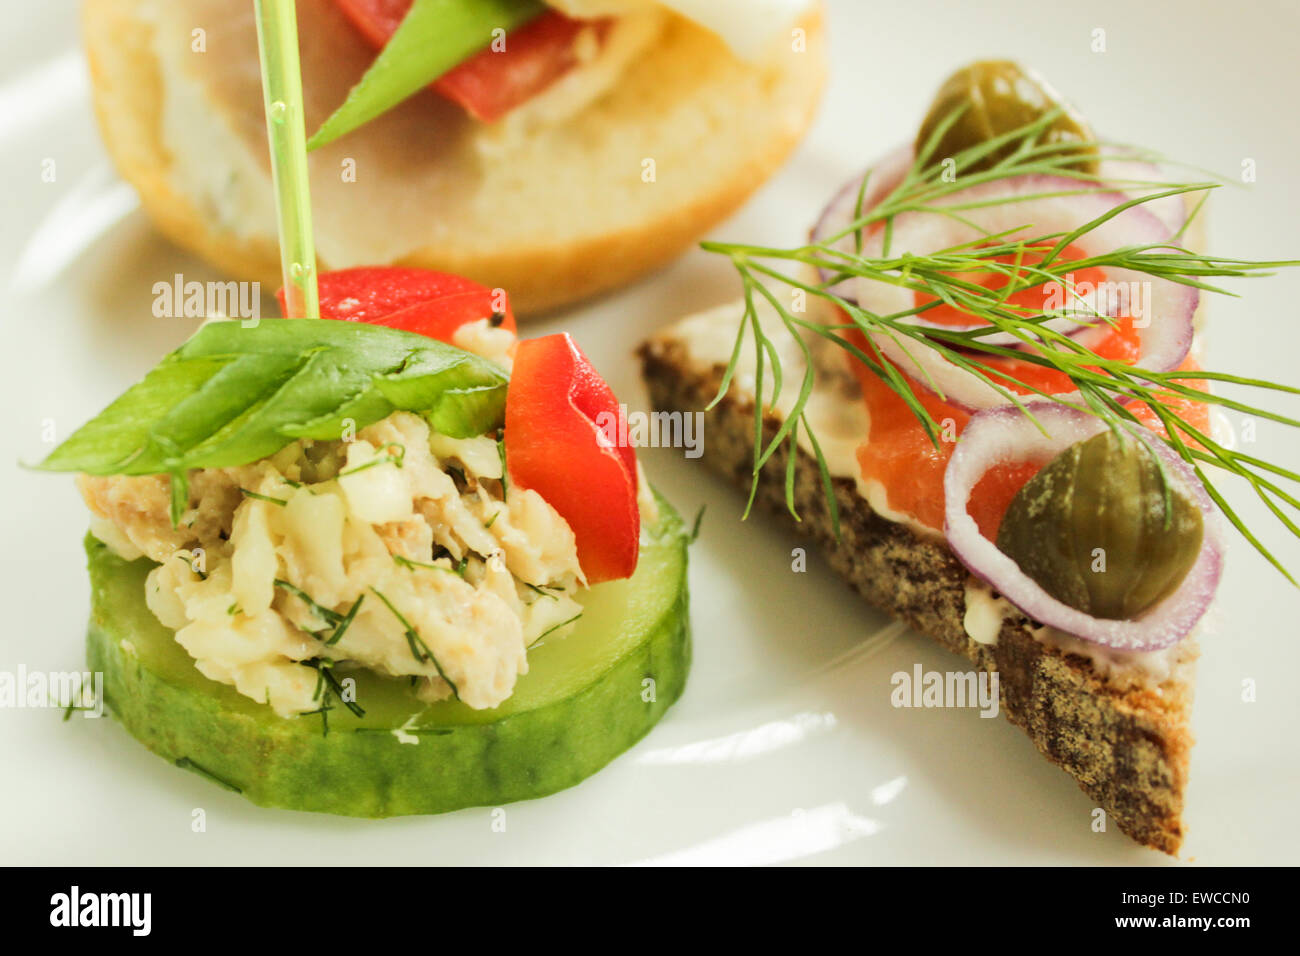 Mini canapes - Colorful fresh snacks on the white plate. - Stock Image